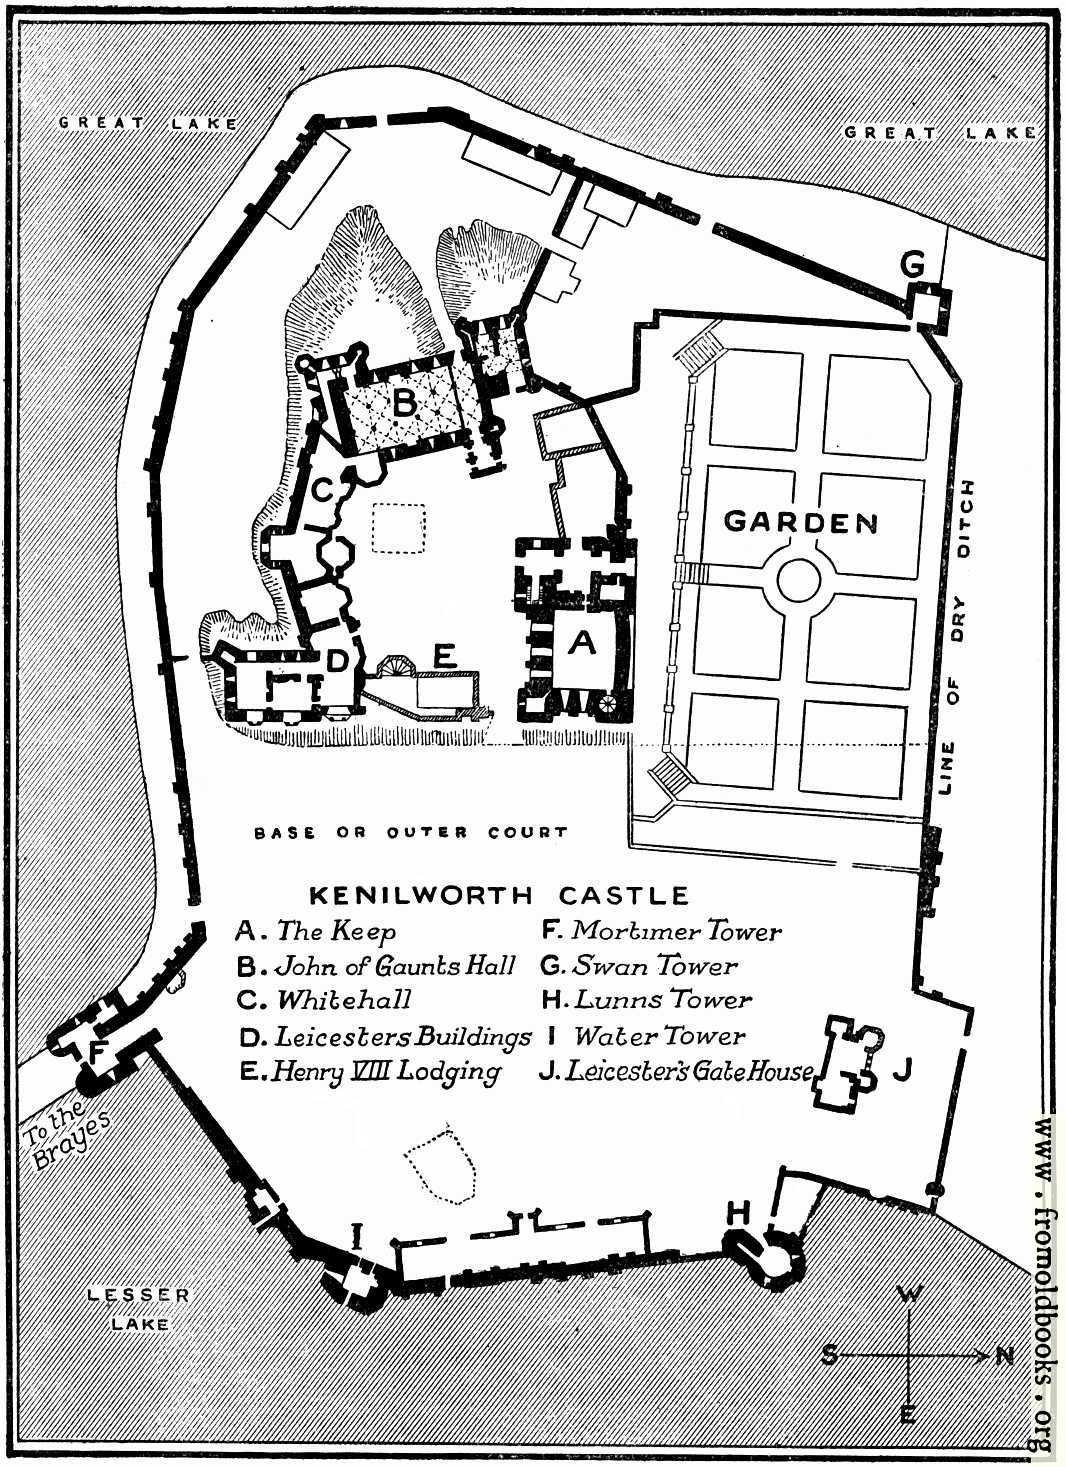 Plan of Kenilworth Castle